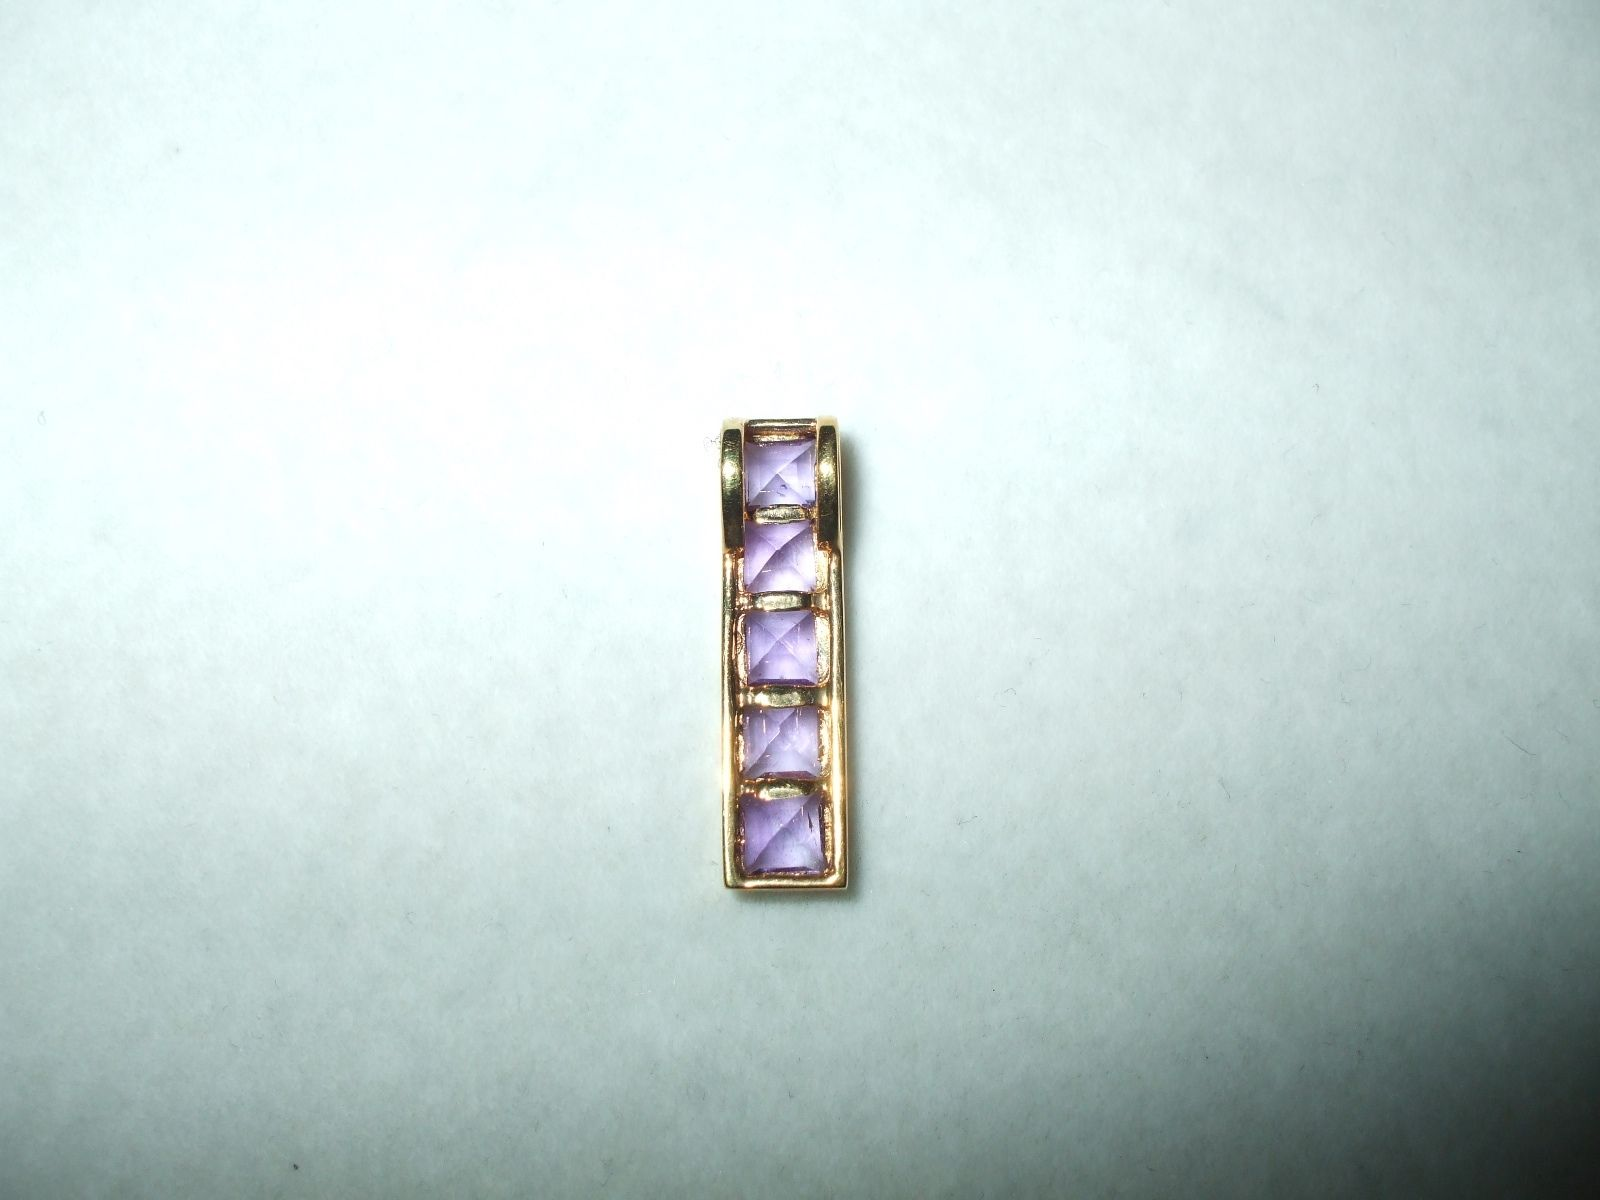 Genuine 1.64 cttw. Amethyst Pendant 14K yellow gold NWT $320